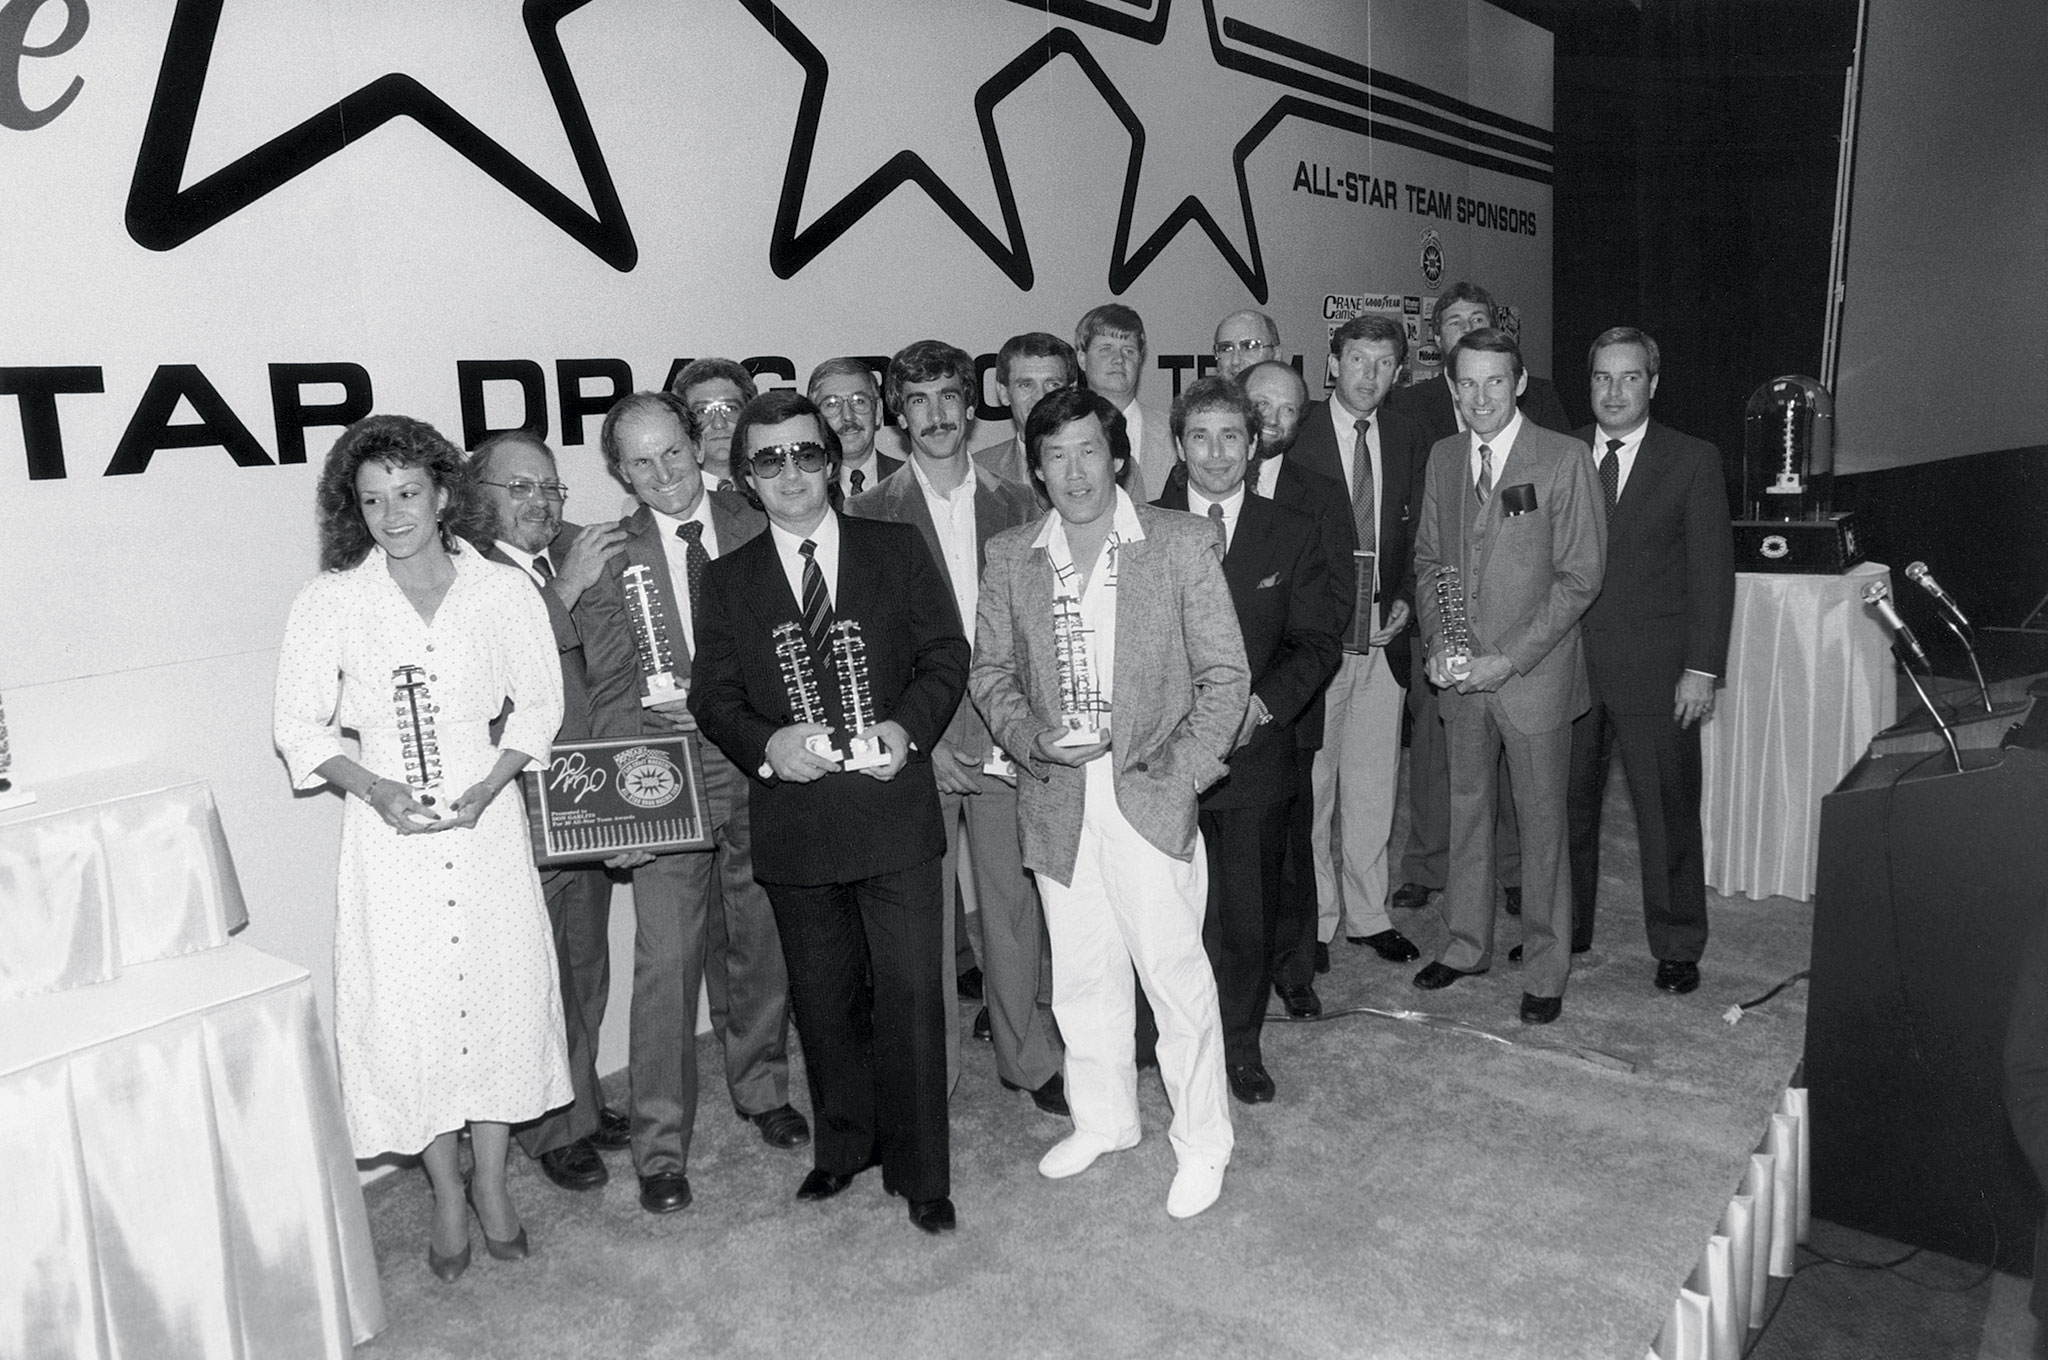 "In 1986, Roland Leong (right) was awarded the Ollie with Joe Hrudka (in glasses) accepting two sponsorship awards for his Mr Gasket company. Other winners that year were Bill Jenkins (a special ""20 for 20"" acknowledgement), Don Garlits, Bill Maropolus, Bob Glidden, Tim Eckstrand, David Reher, Buddy Morrison, Kenny Bernstein, Jerry Haas, Dale Armstrong, and several others."